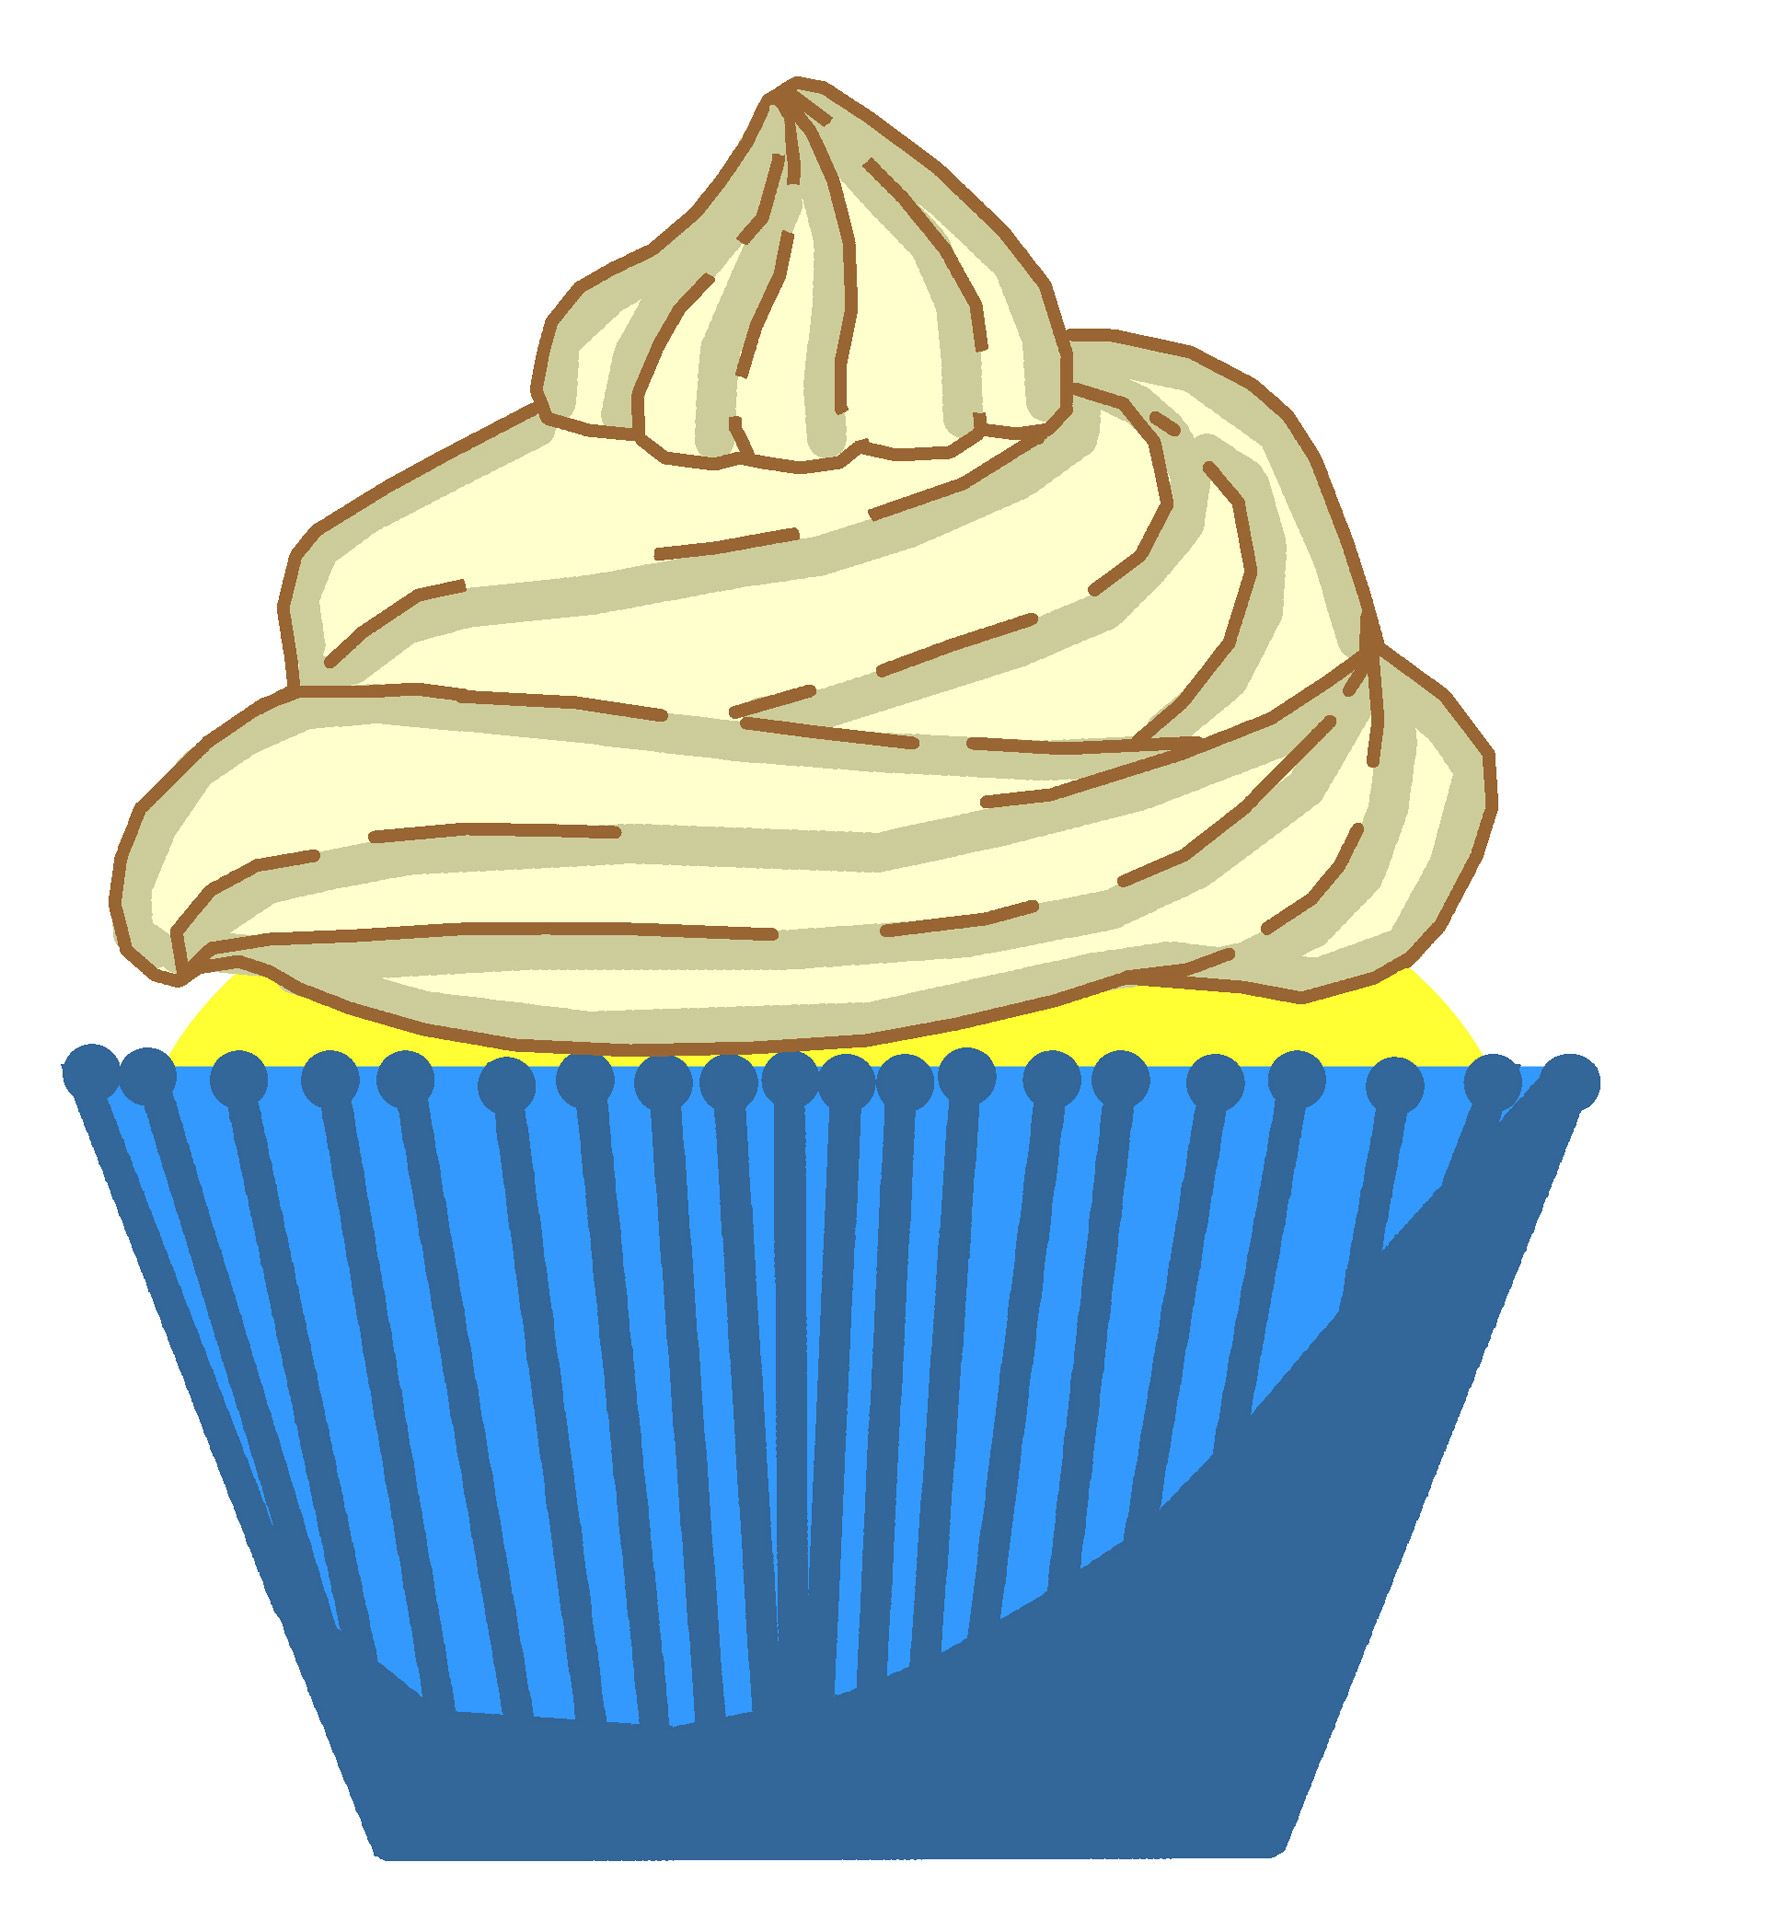 hight resolution of clip art of cupcakes